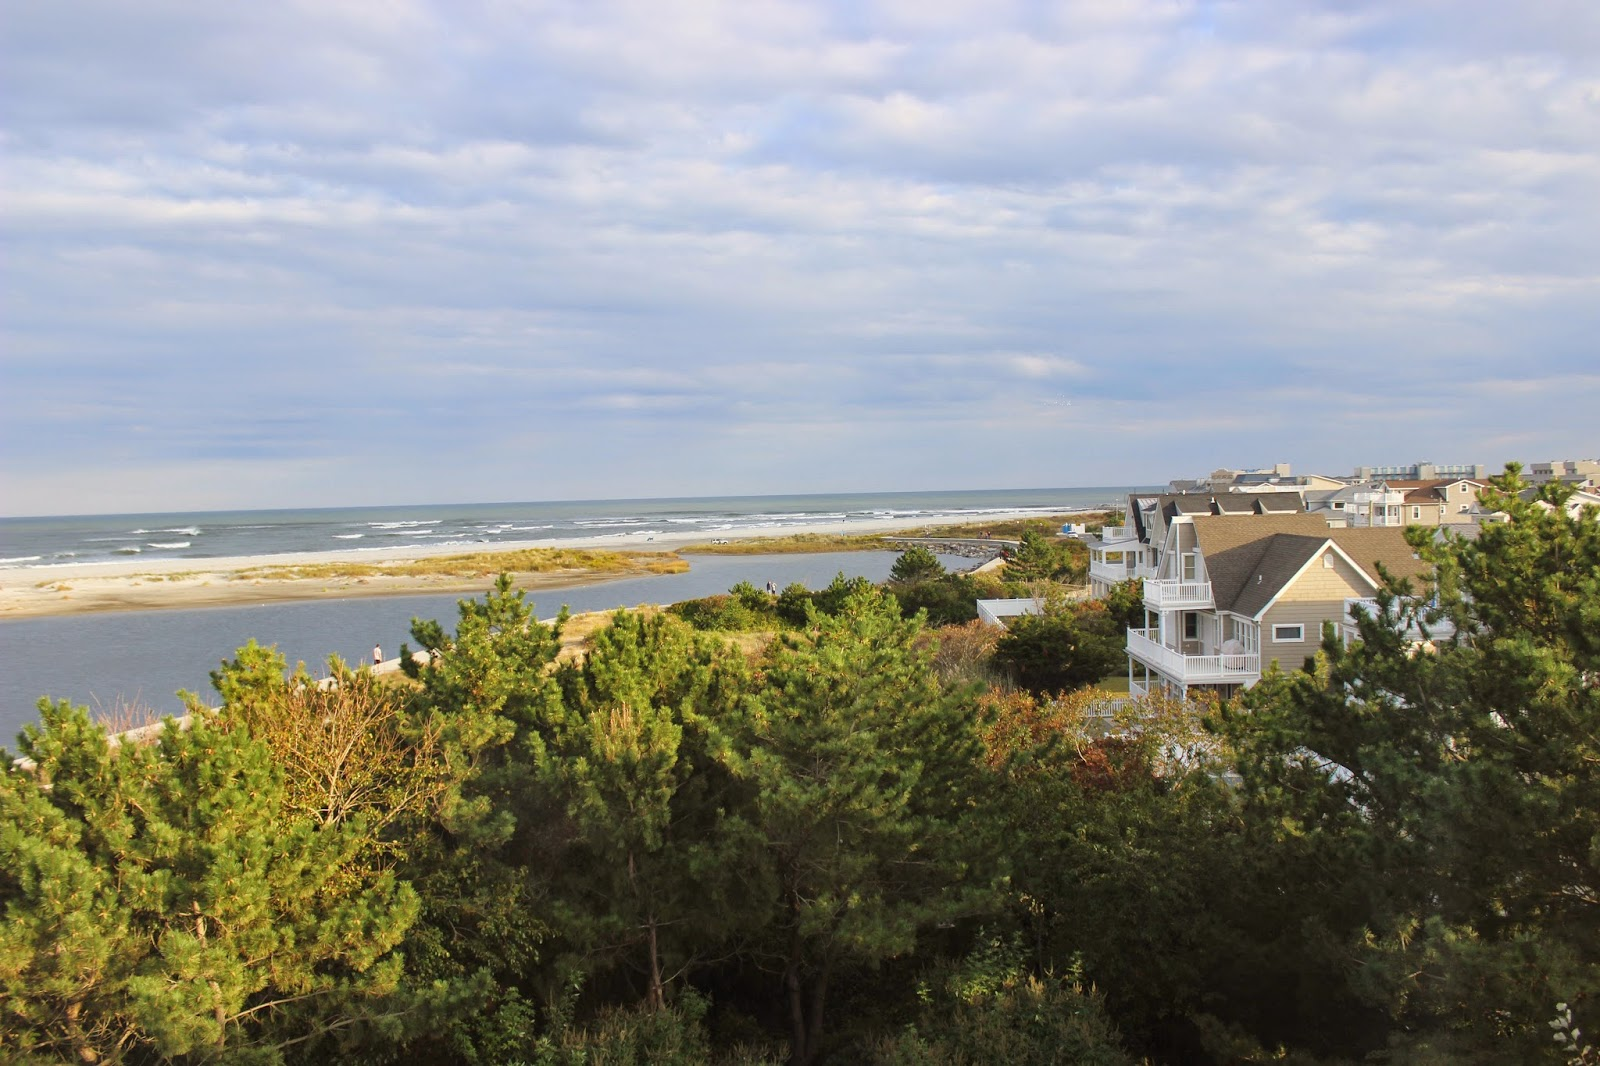 New Jersey Lighthouse Challenge 2014 - view from Hereford Lighthouse